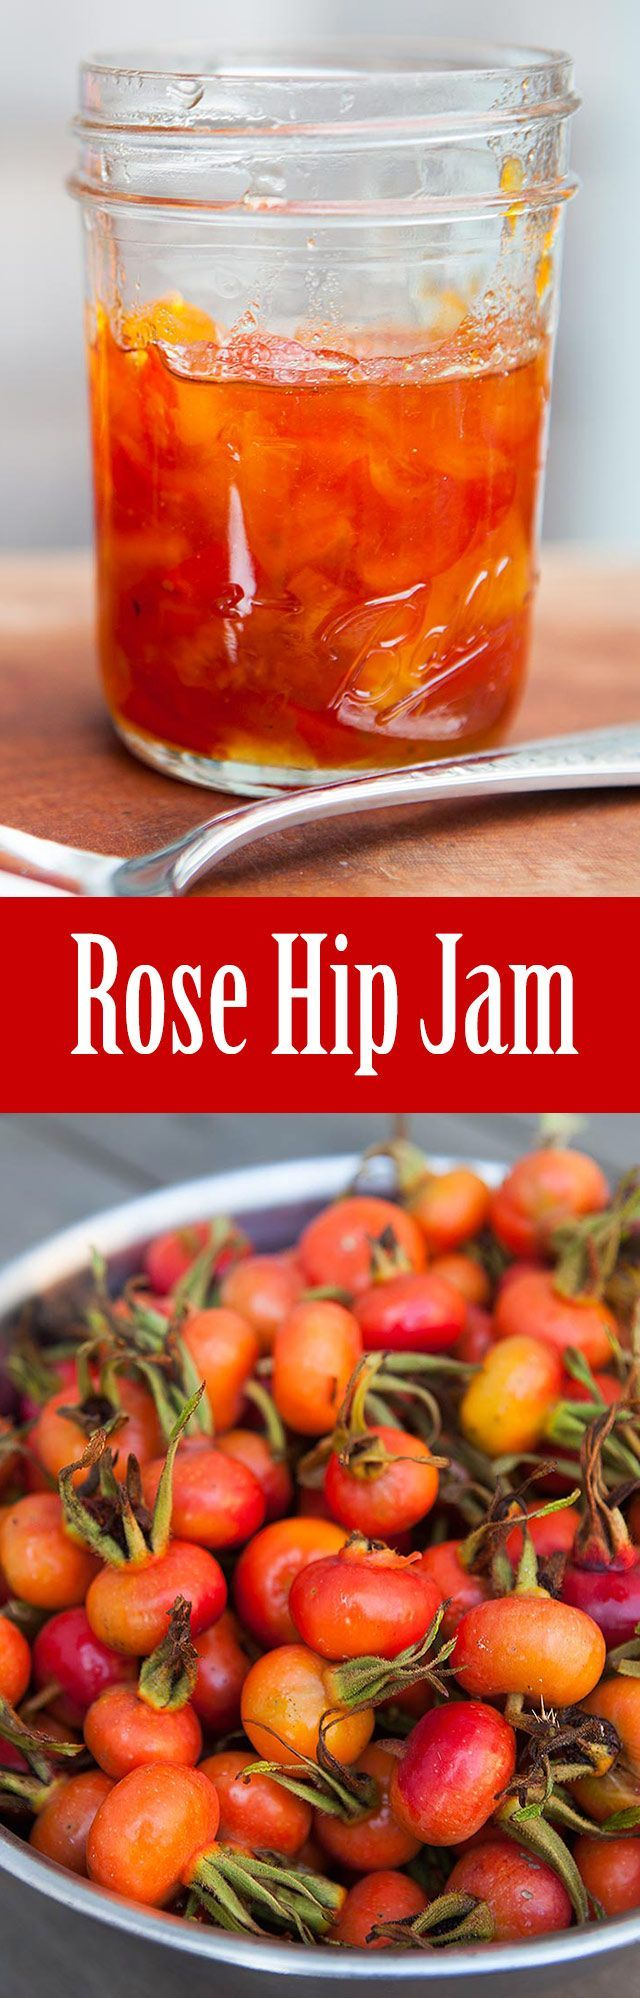 Rose Hip Jam ~ Marmalade-style rose hip jam with rose hips, orange ...